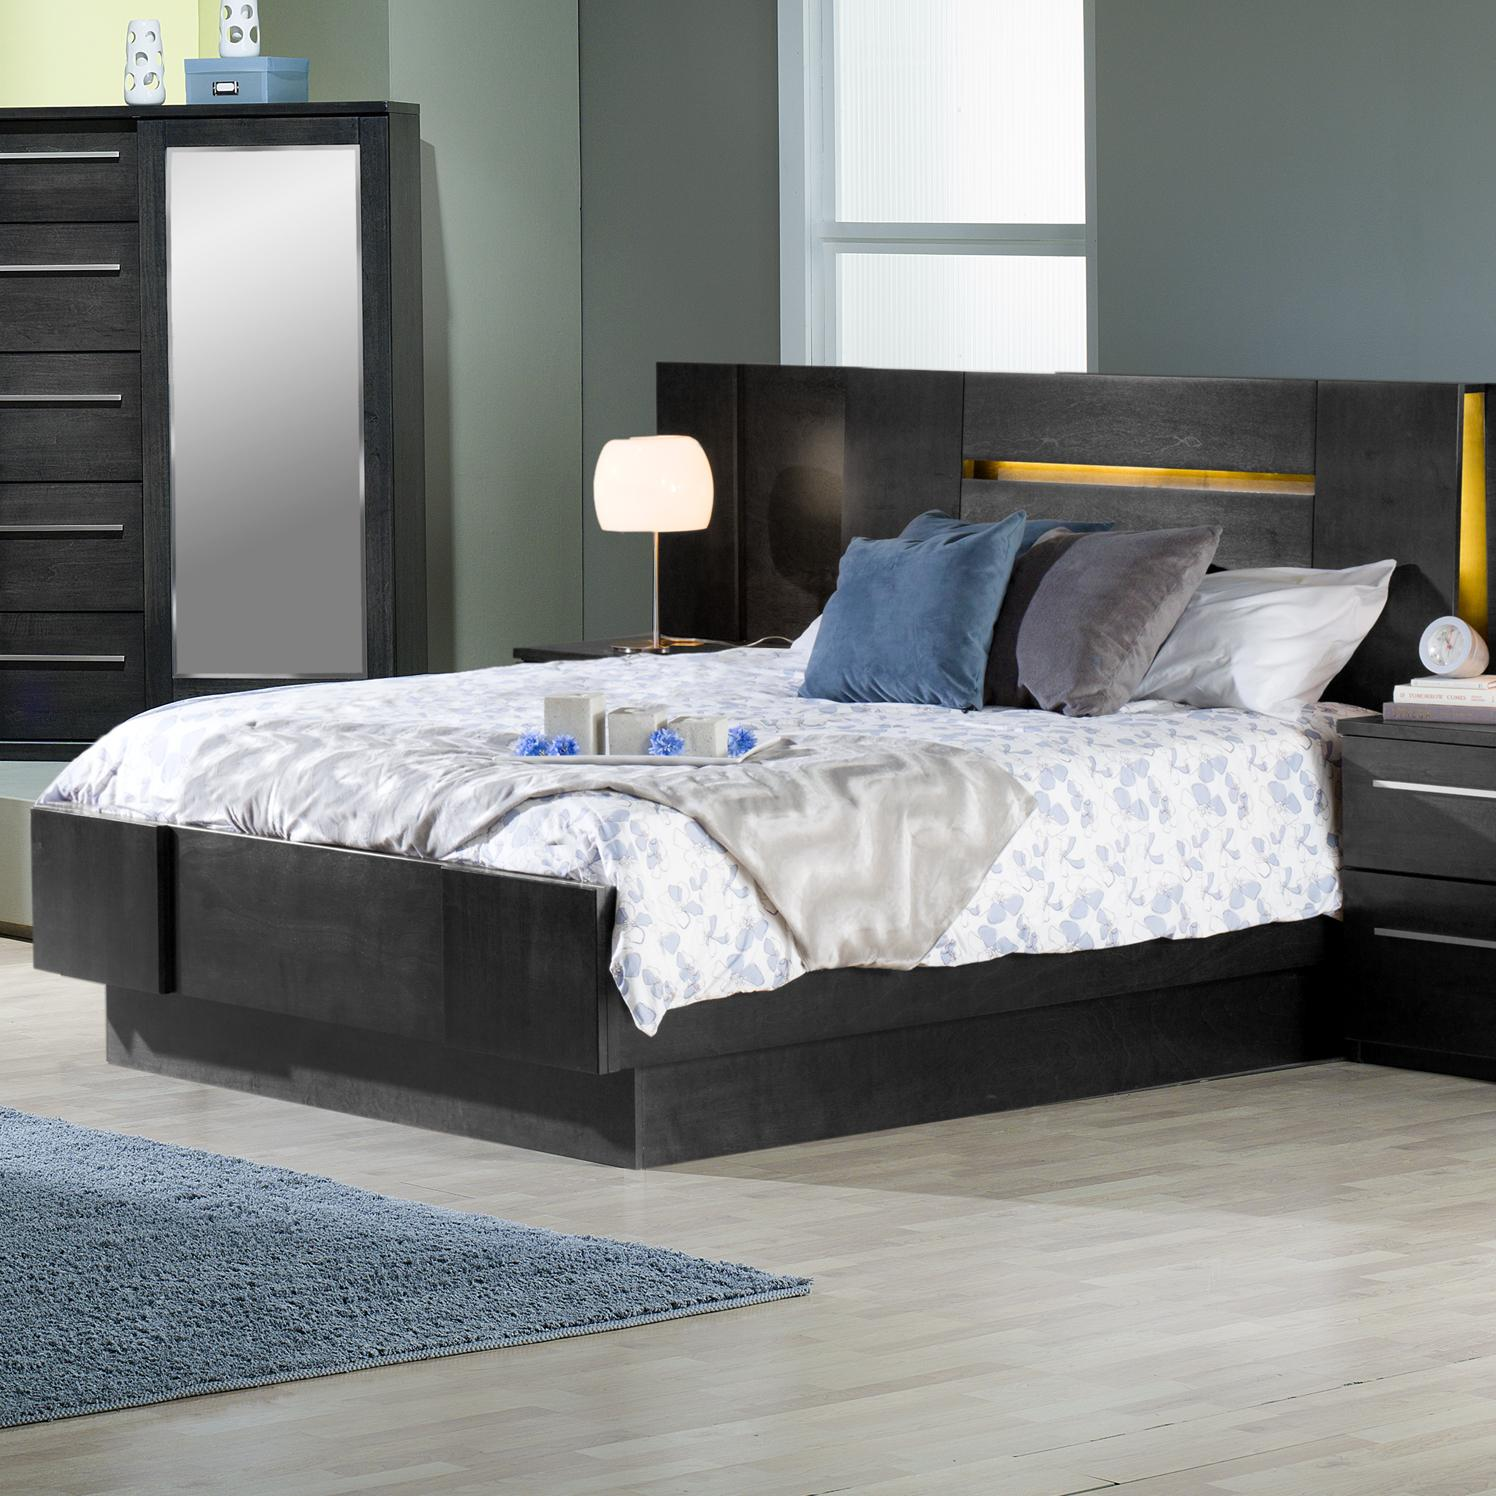 Milano Queen Platform Bed with 2 Nightstands by Defehr at Stoney Creek Furniture